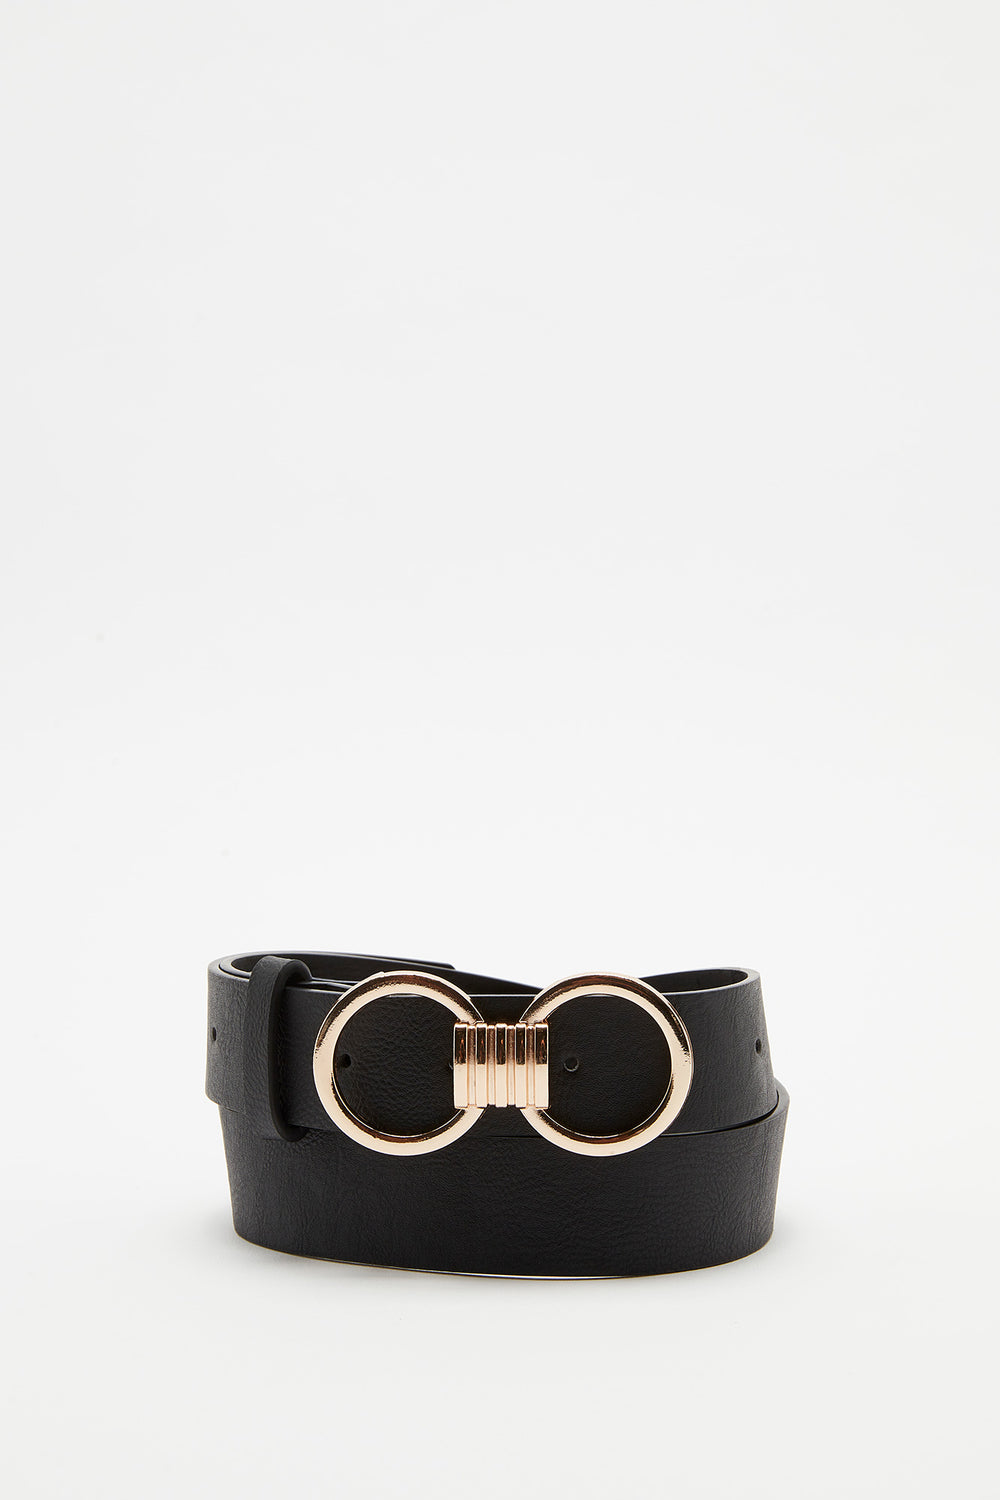 Double Circle Belt Black